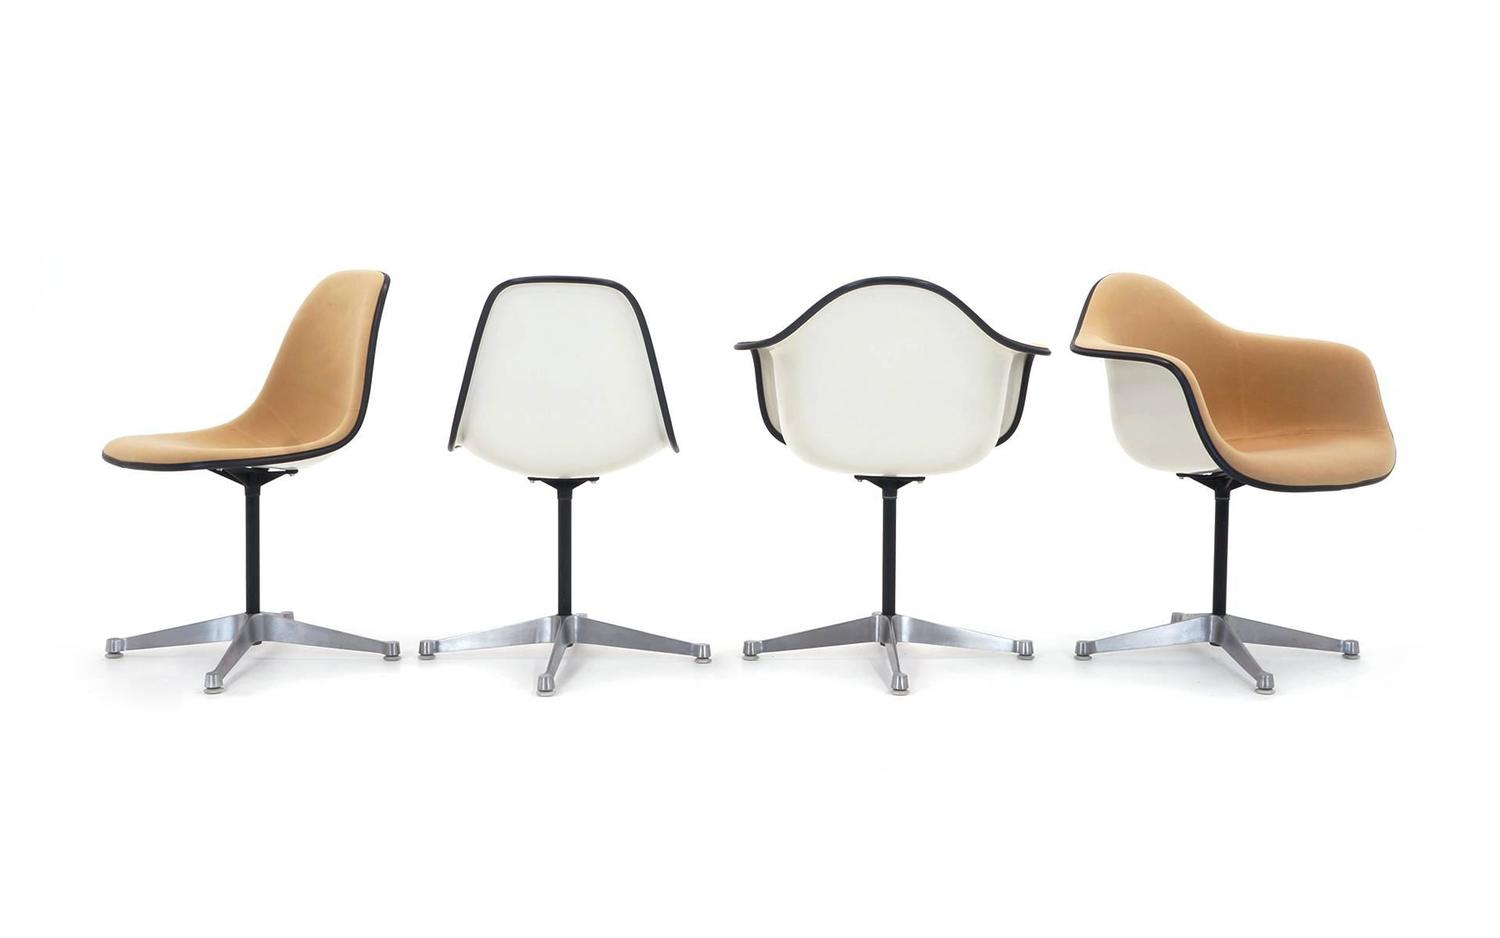 upholstered side chairs with arms